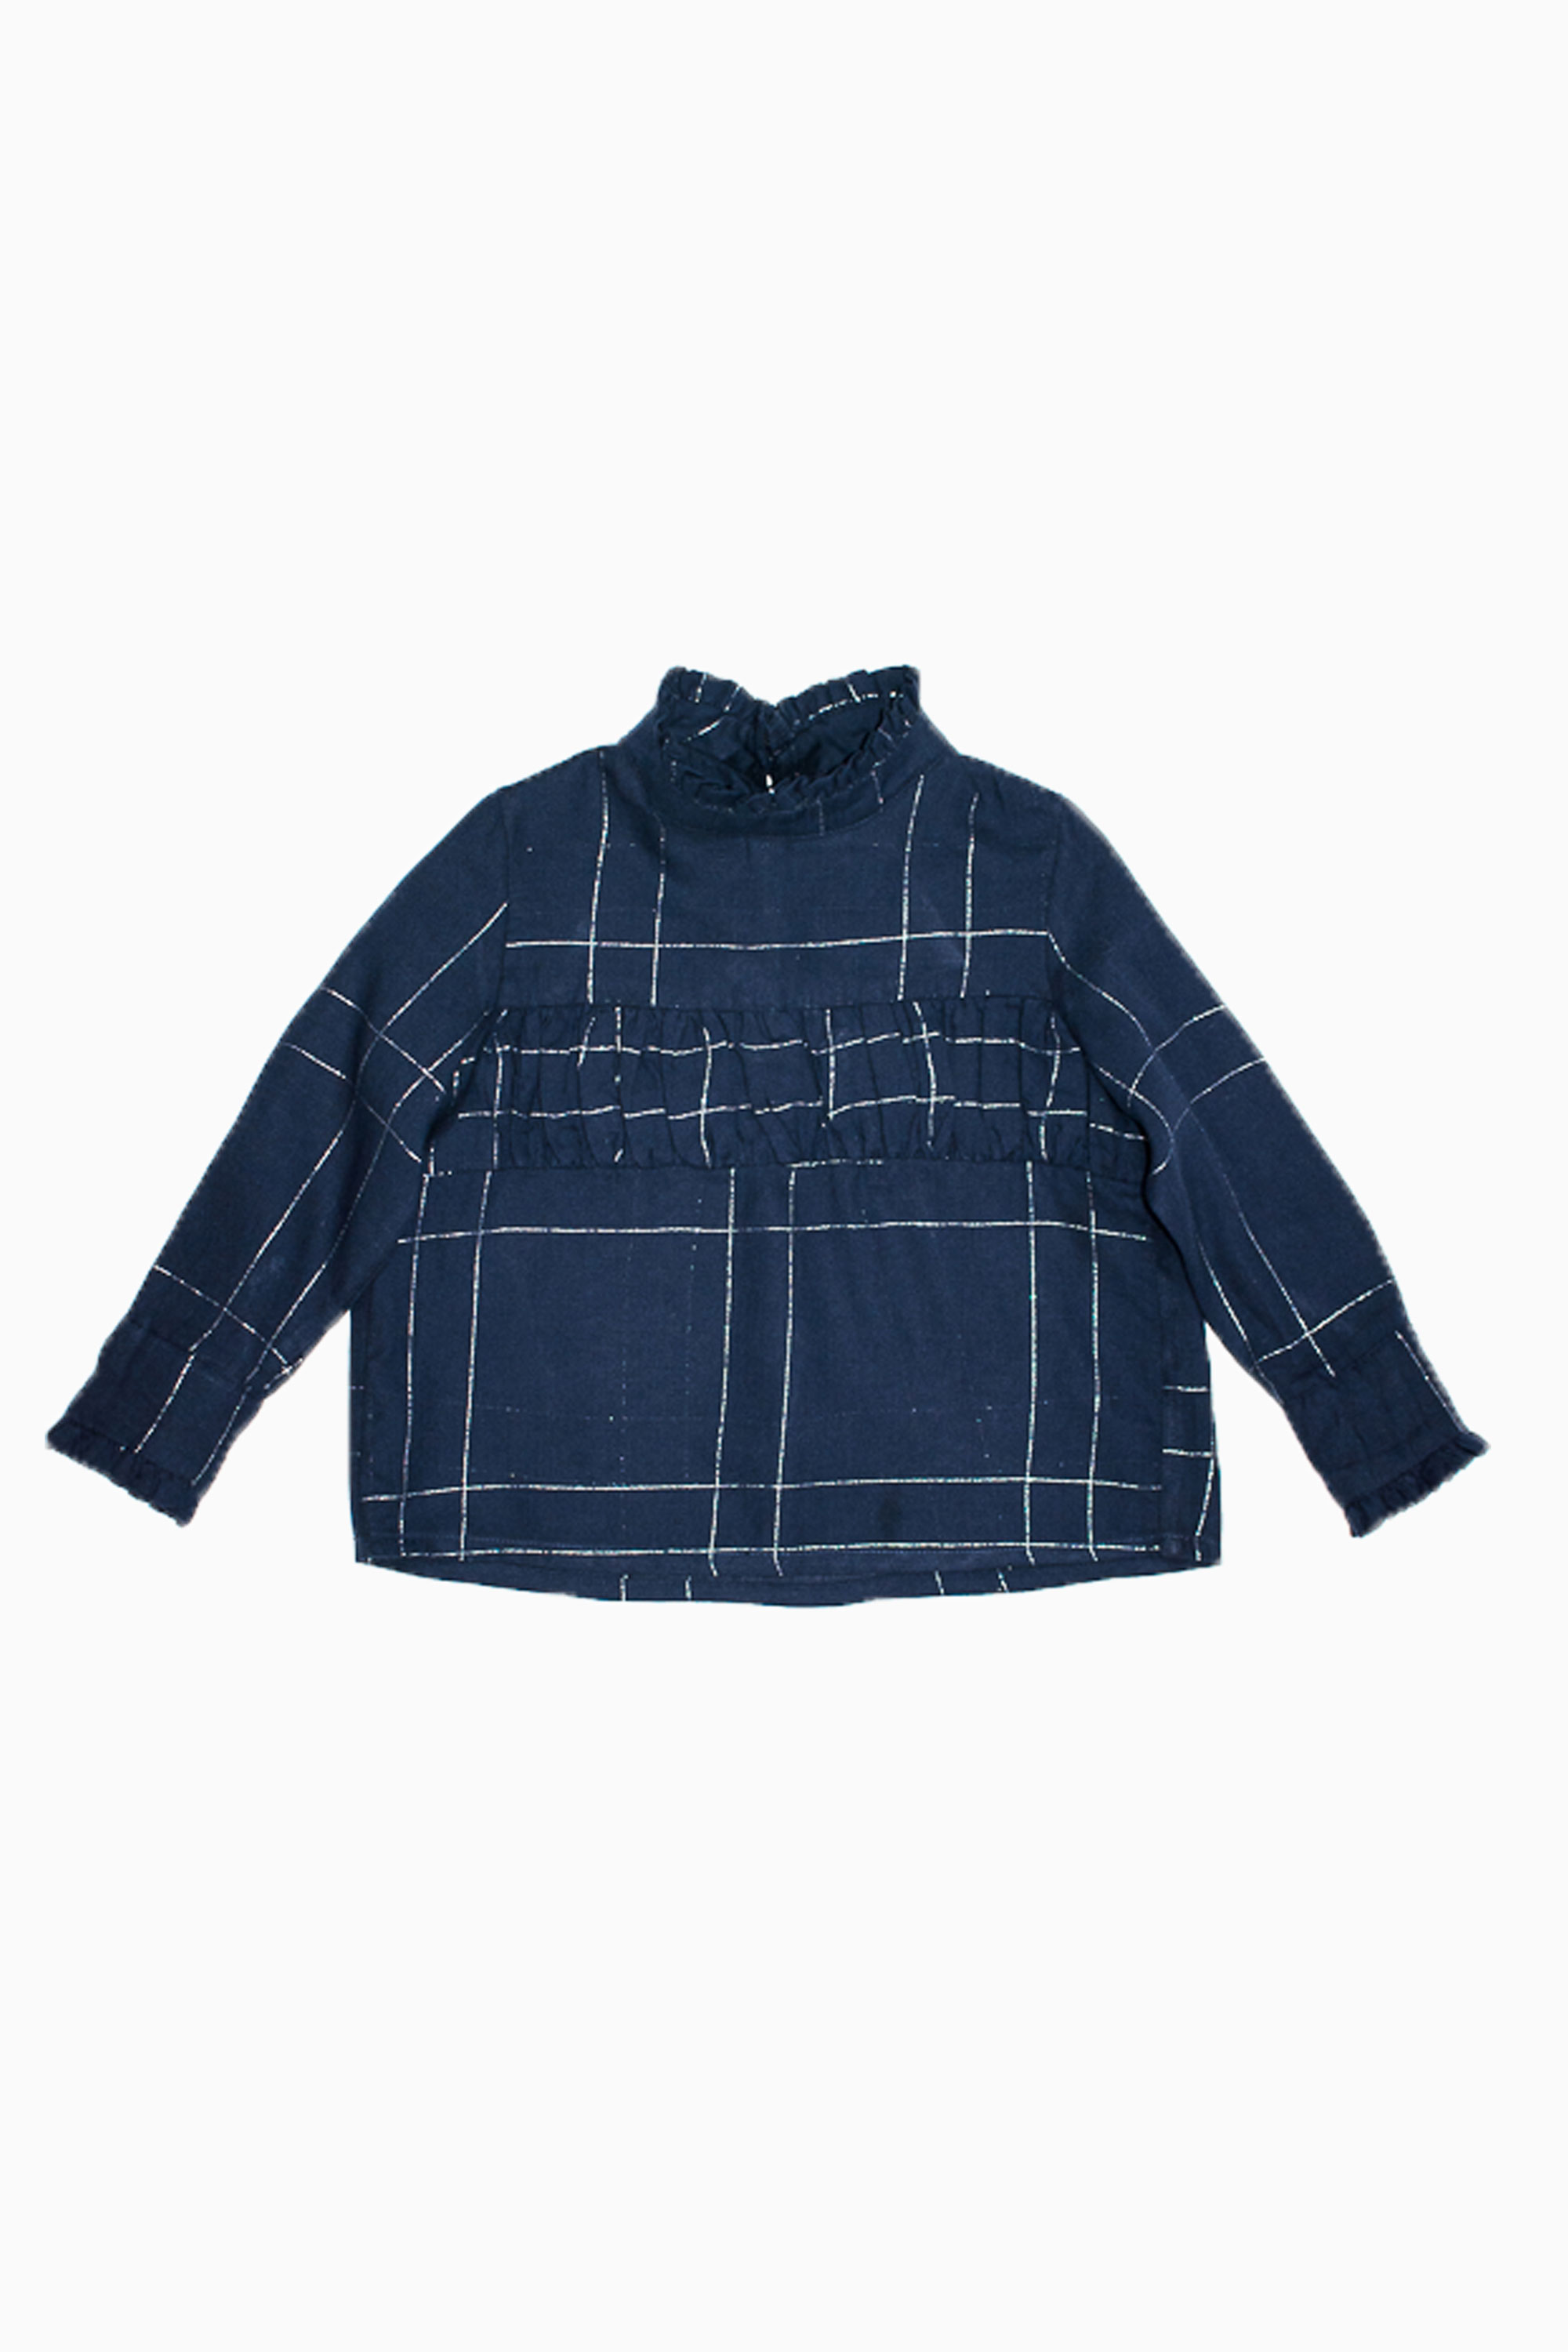 navy silver squared blouse